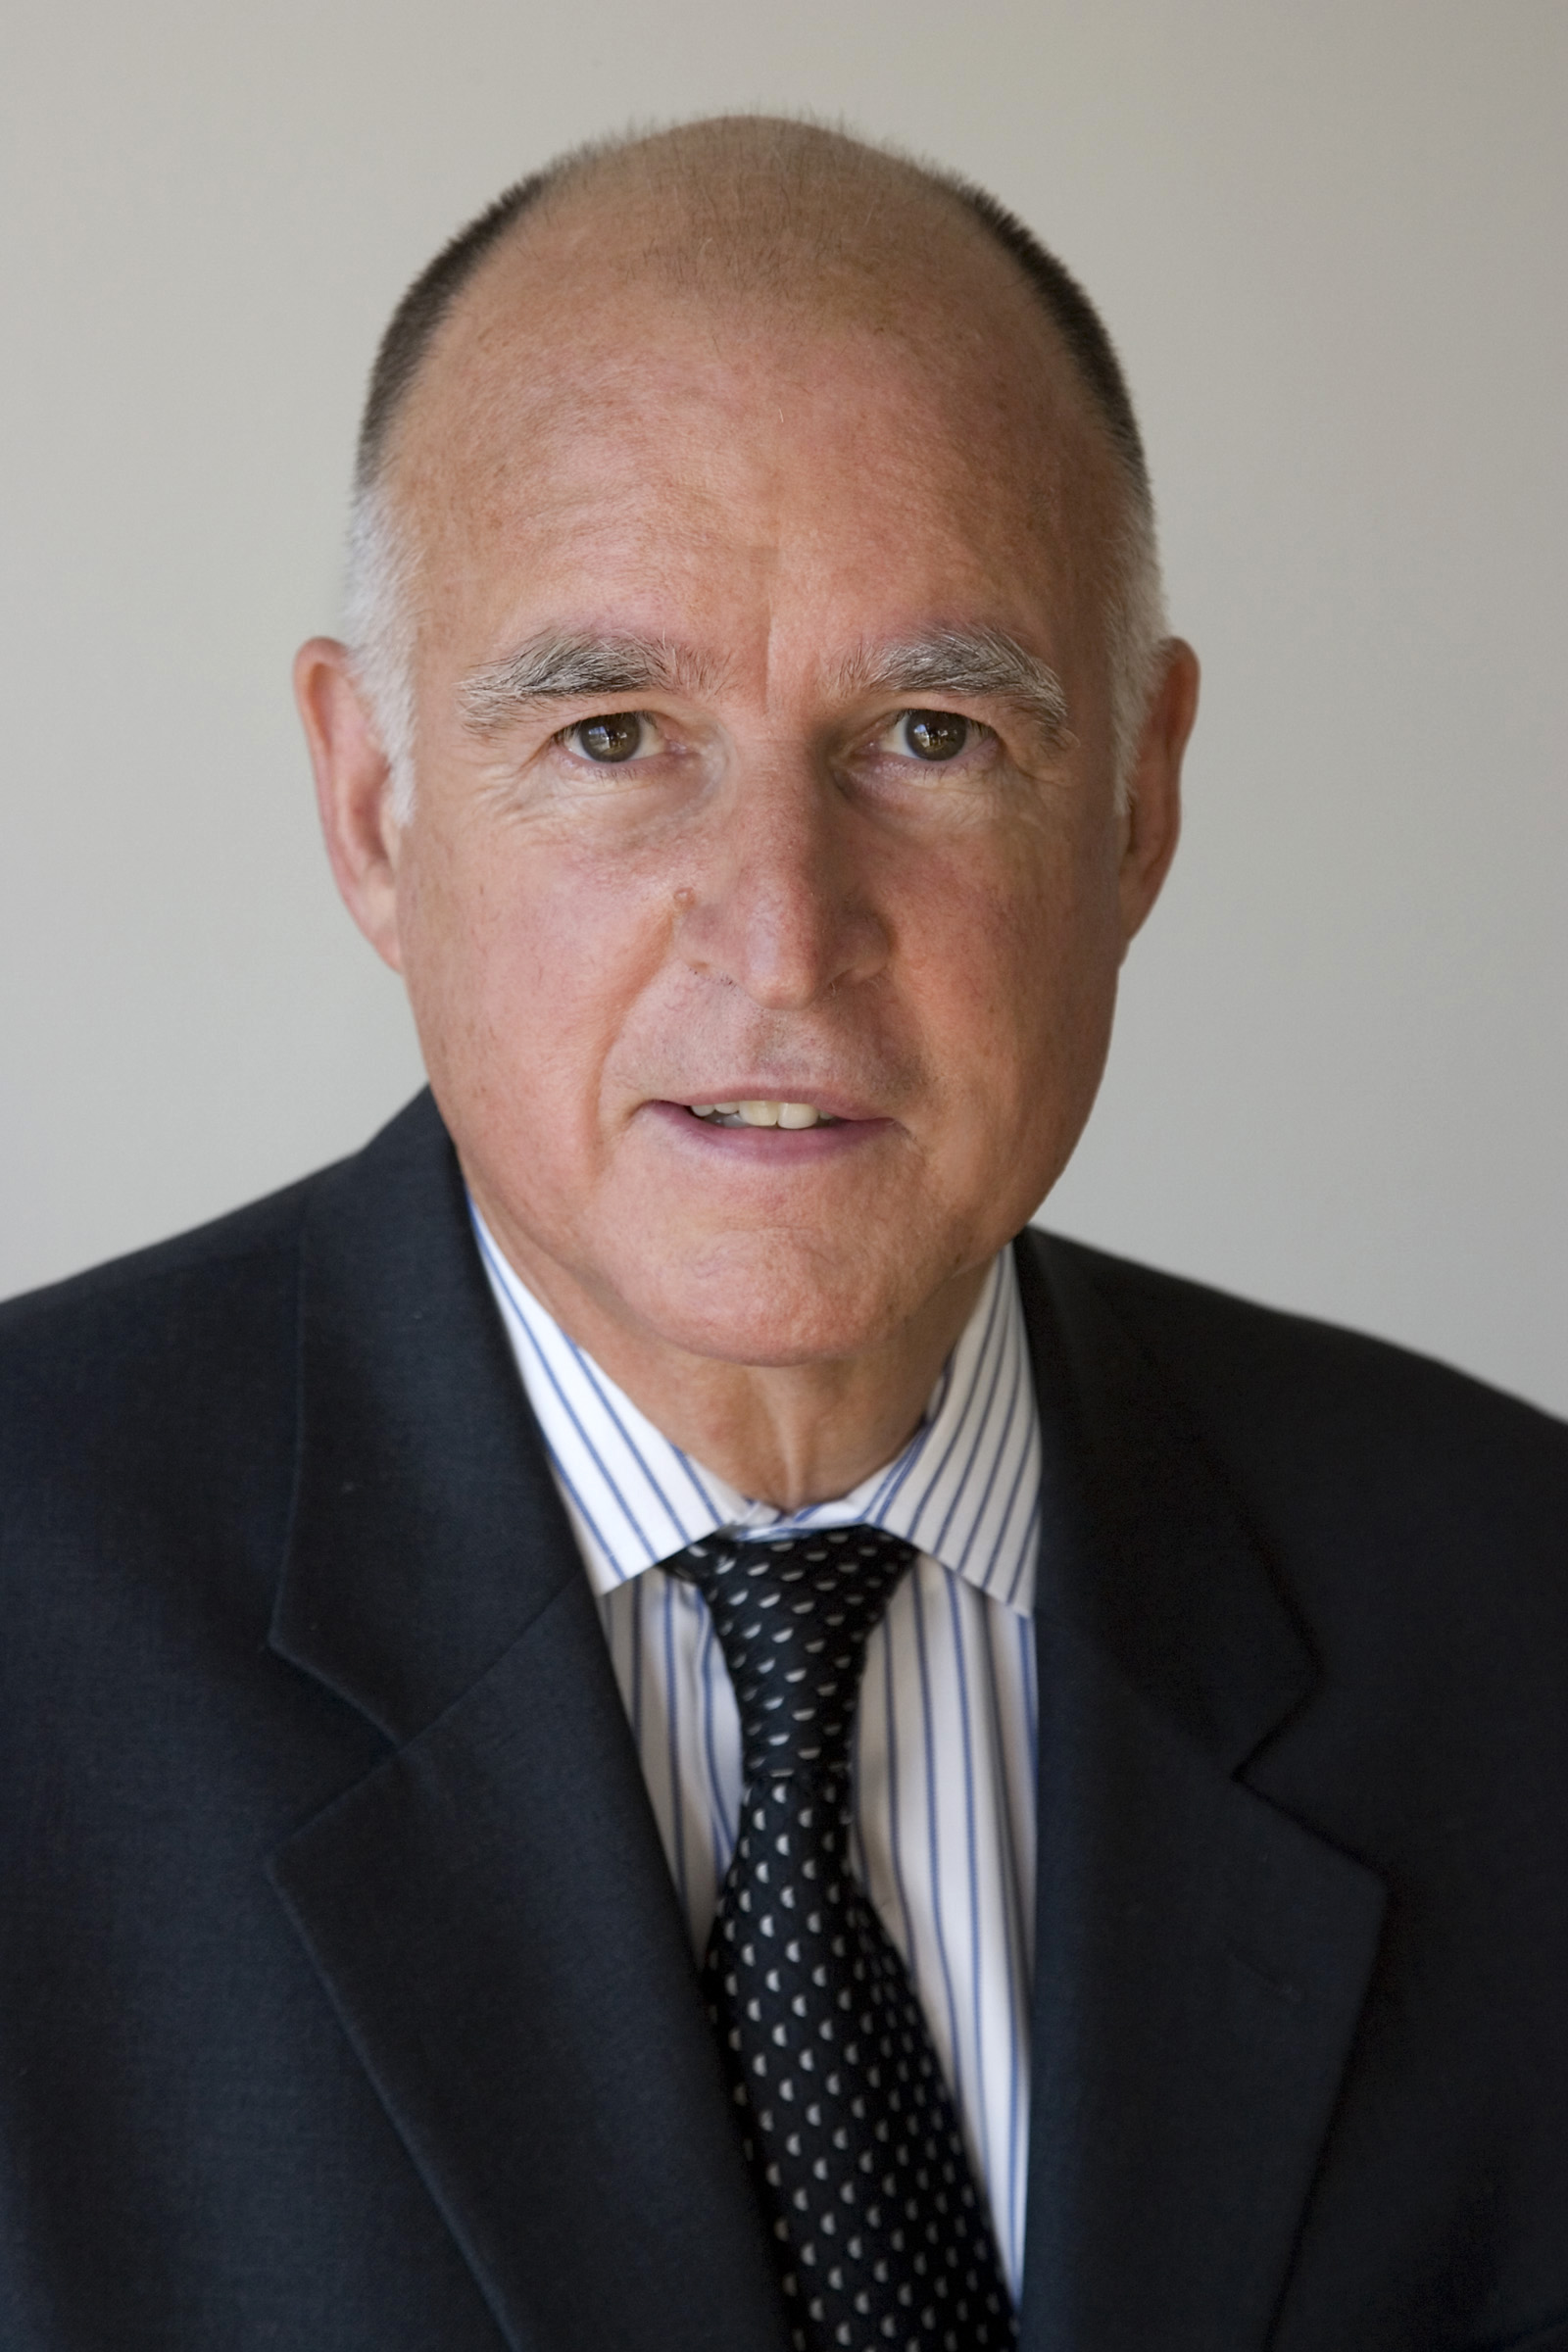 The 79-year old son of father (?) and mother(?), 170 cm tall Jerry Brown in 2017 photo